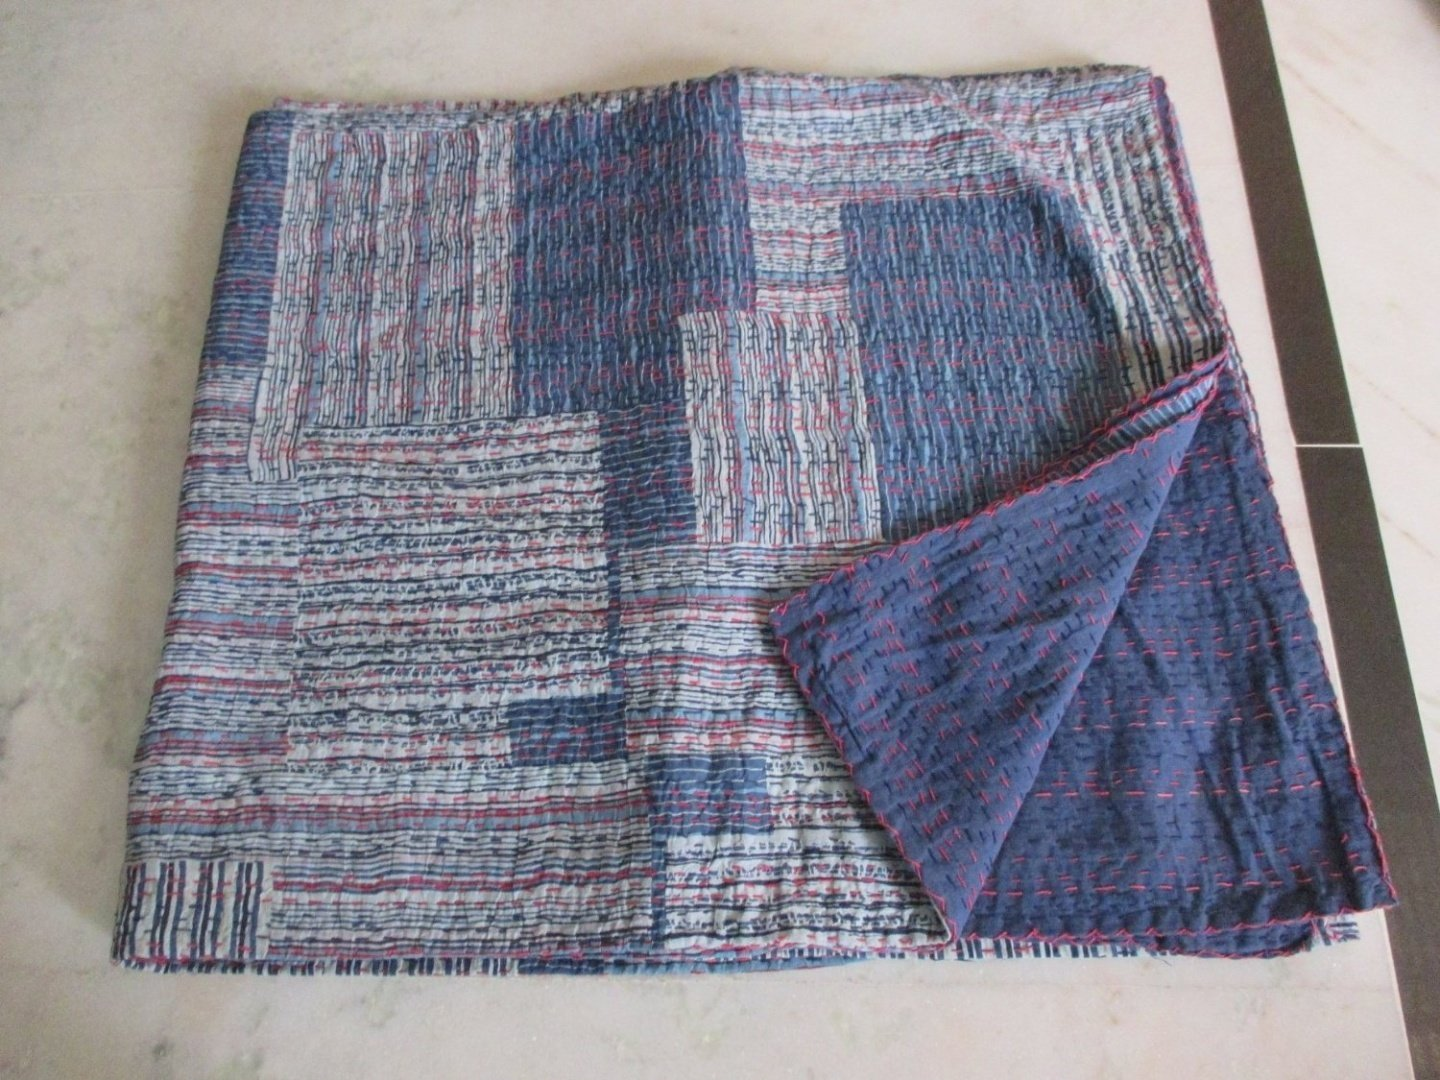 Tribal Asian Textiles Indigo Color Hand Block Printed Kantha Quilt, Queen Size Patchwork Cotton Bedspread, Made By Artisians of India